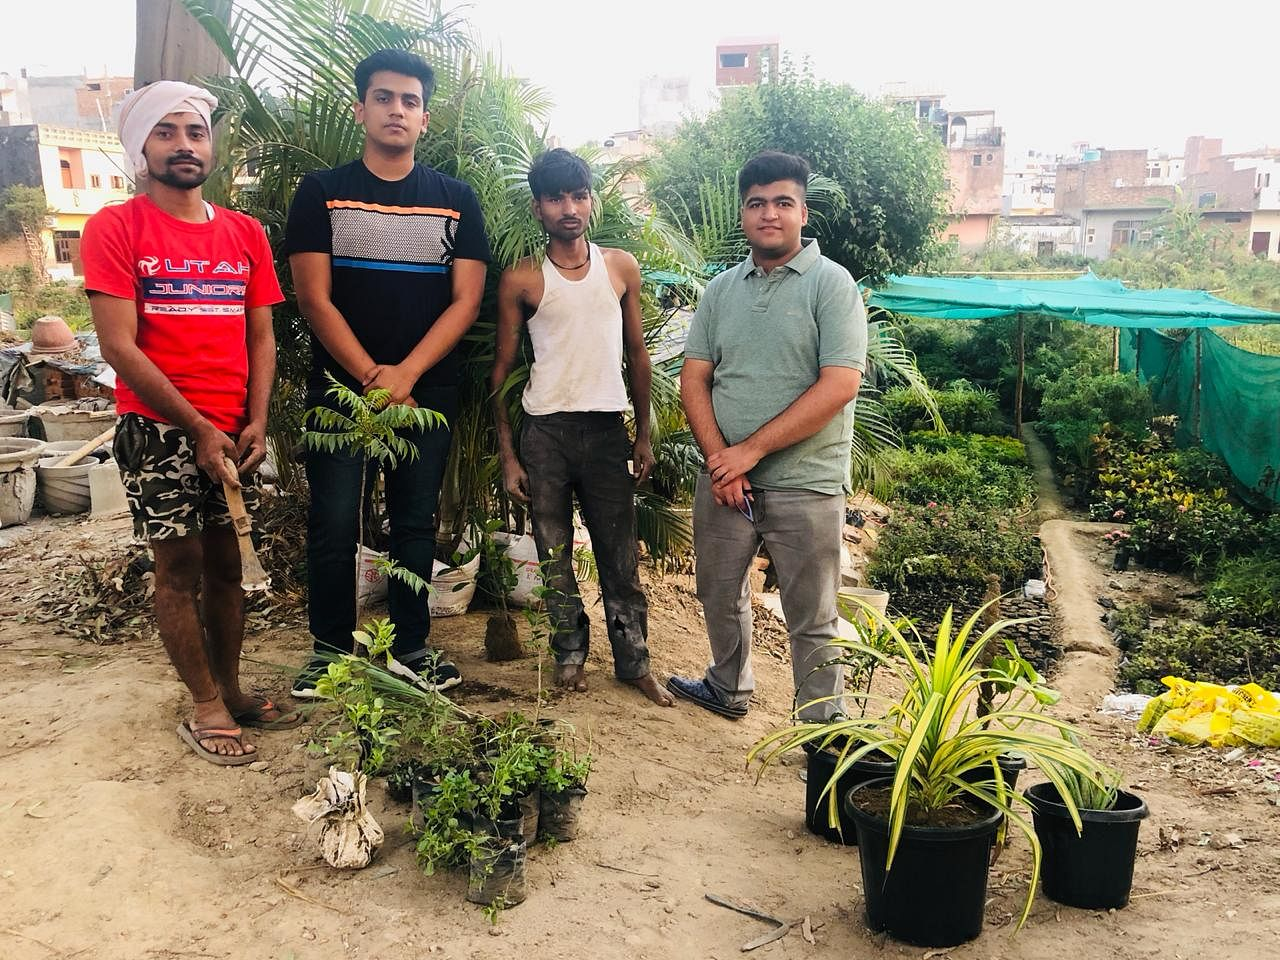 Meet these 17-year-old entrepreneurs in Delhi reaping profits from their gardening startup